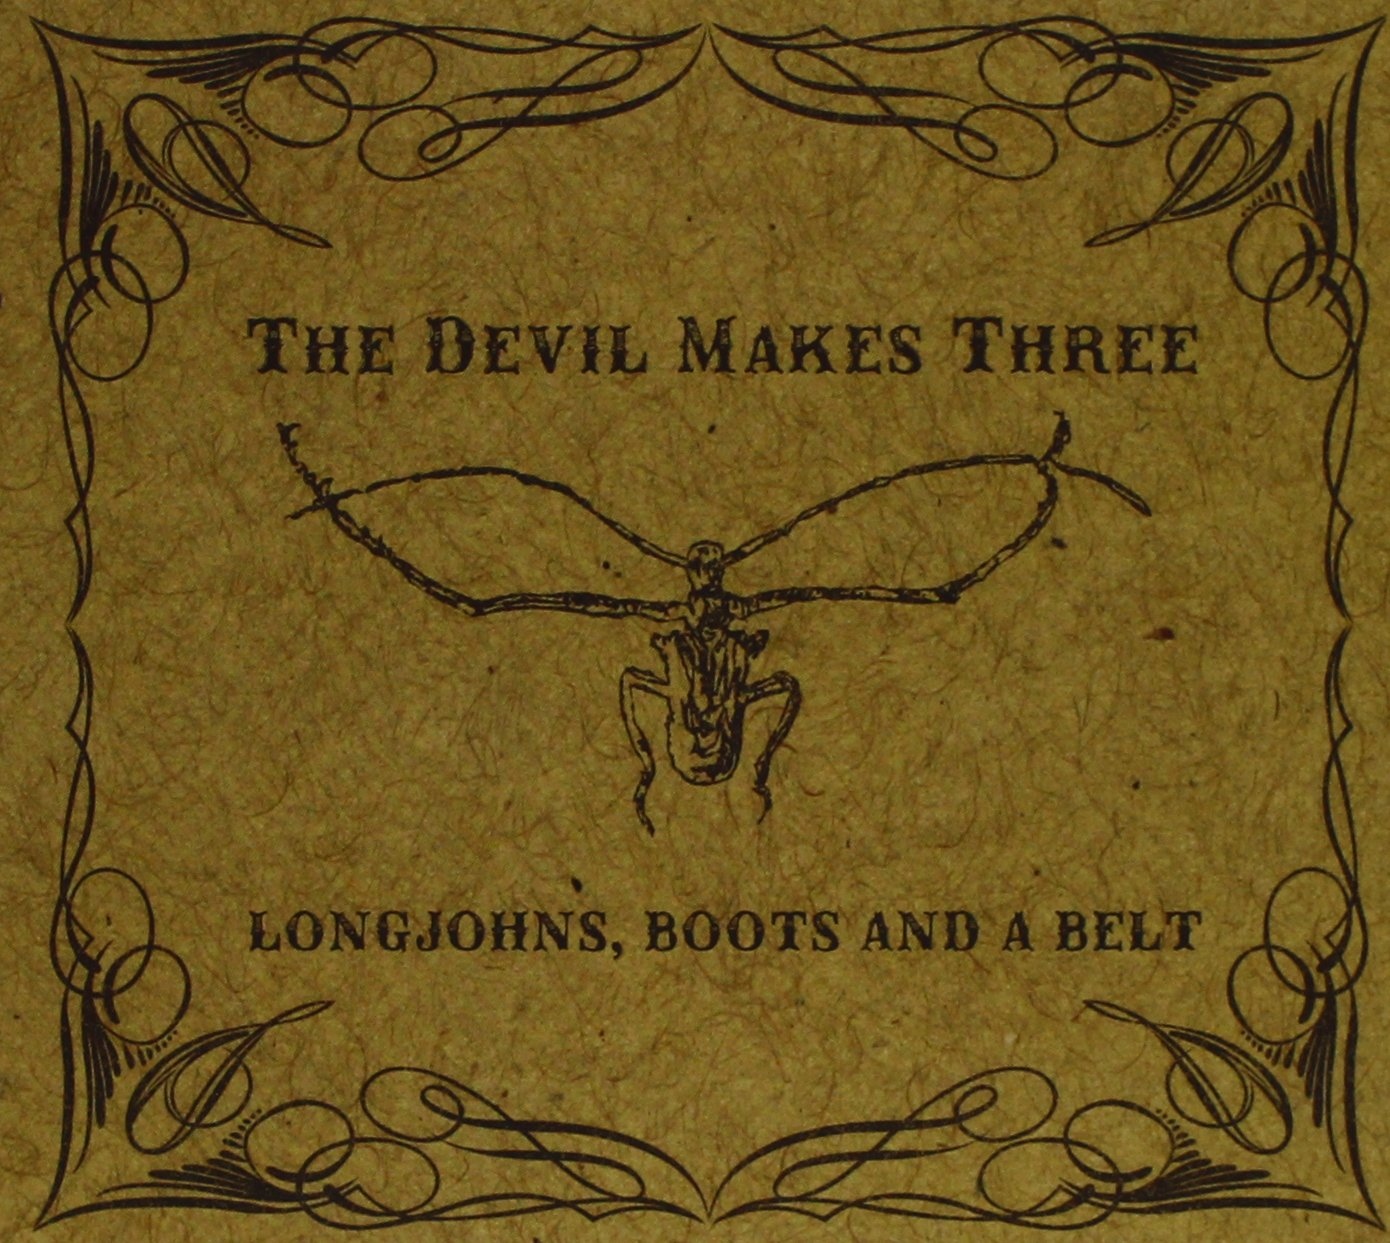 THE DEVIL MAKES THREE - THE PLANK LYRICS